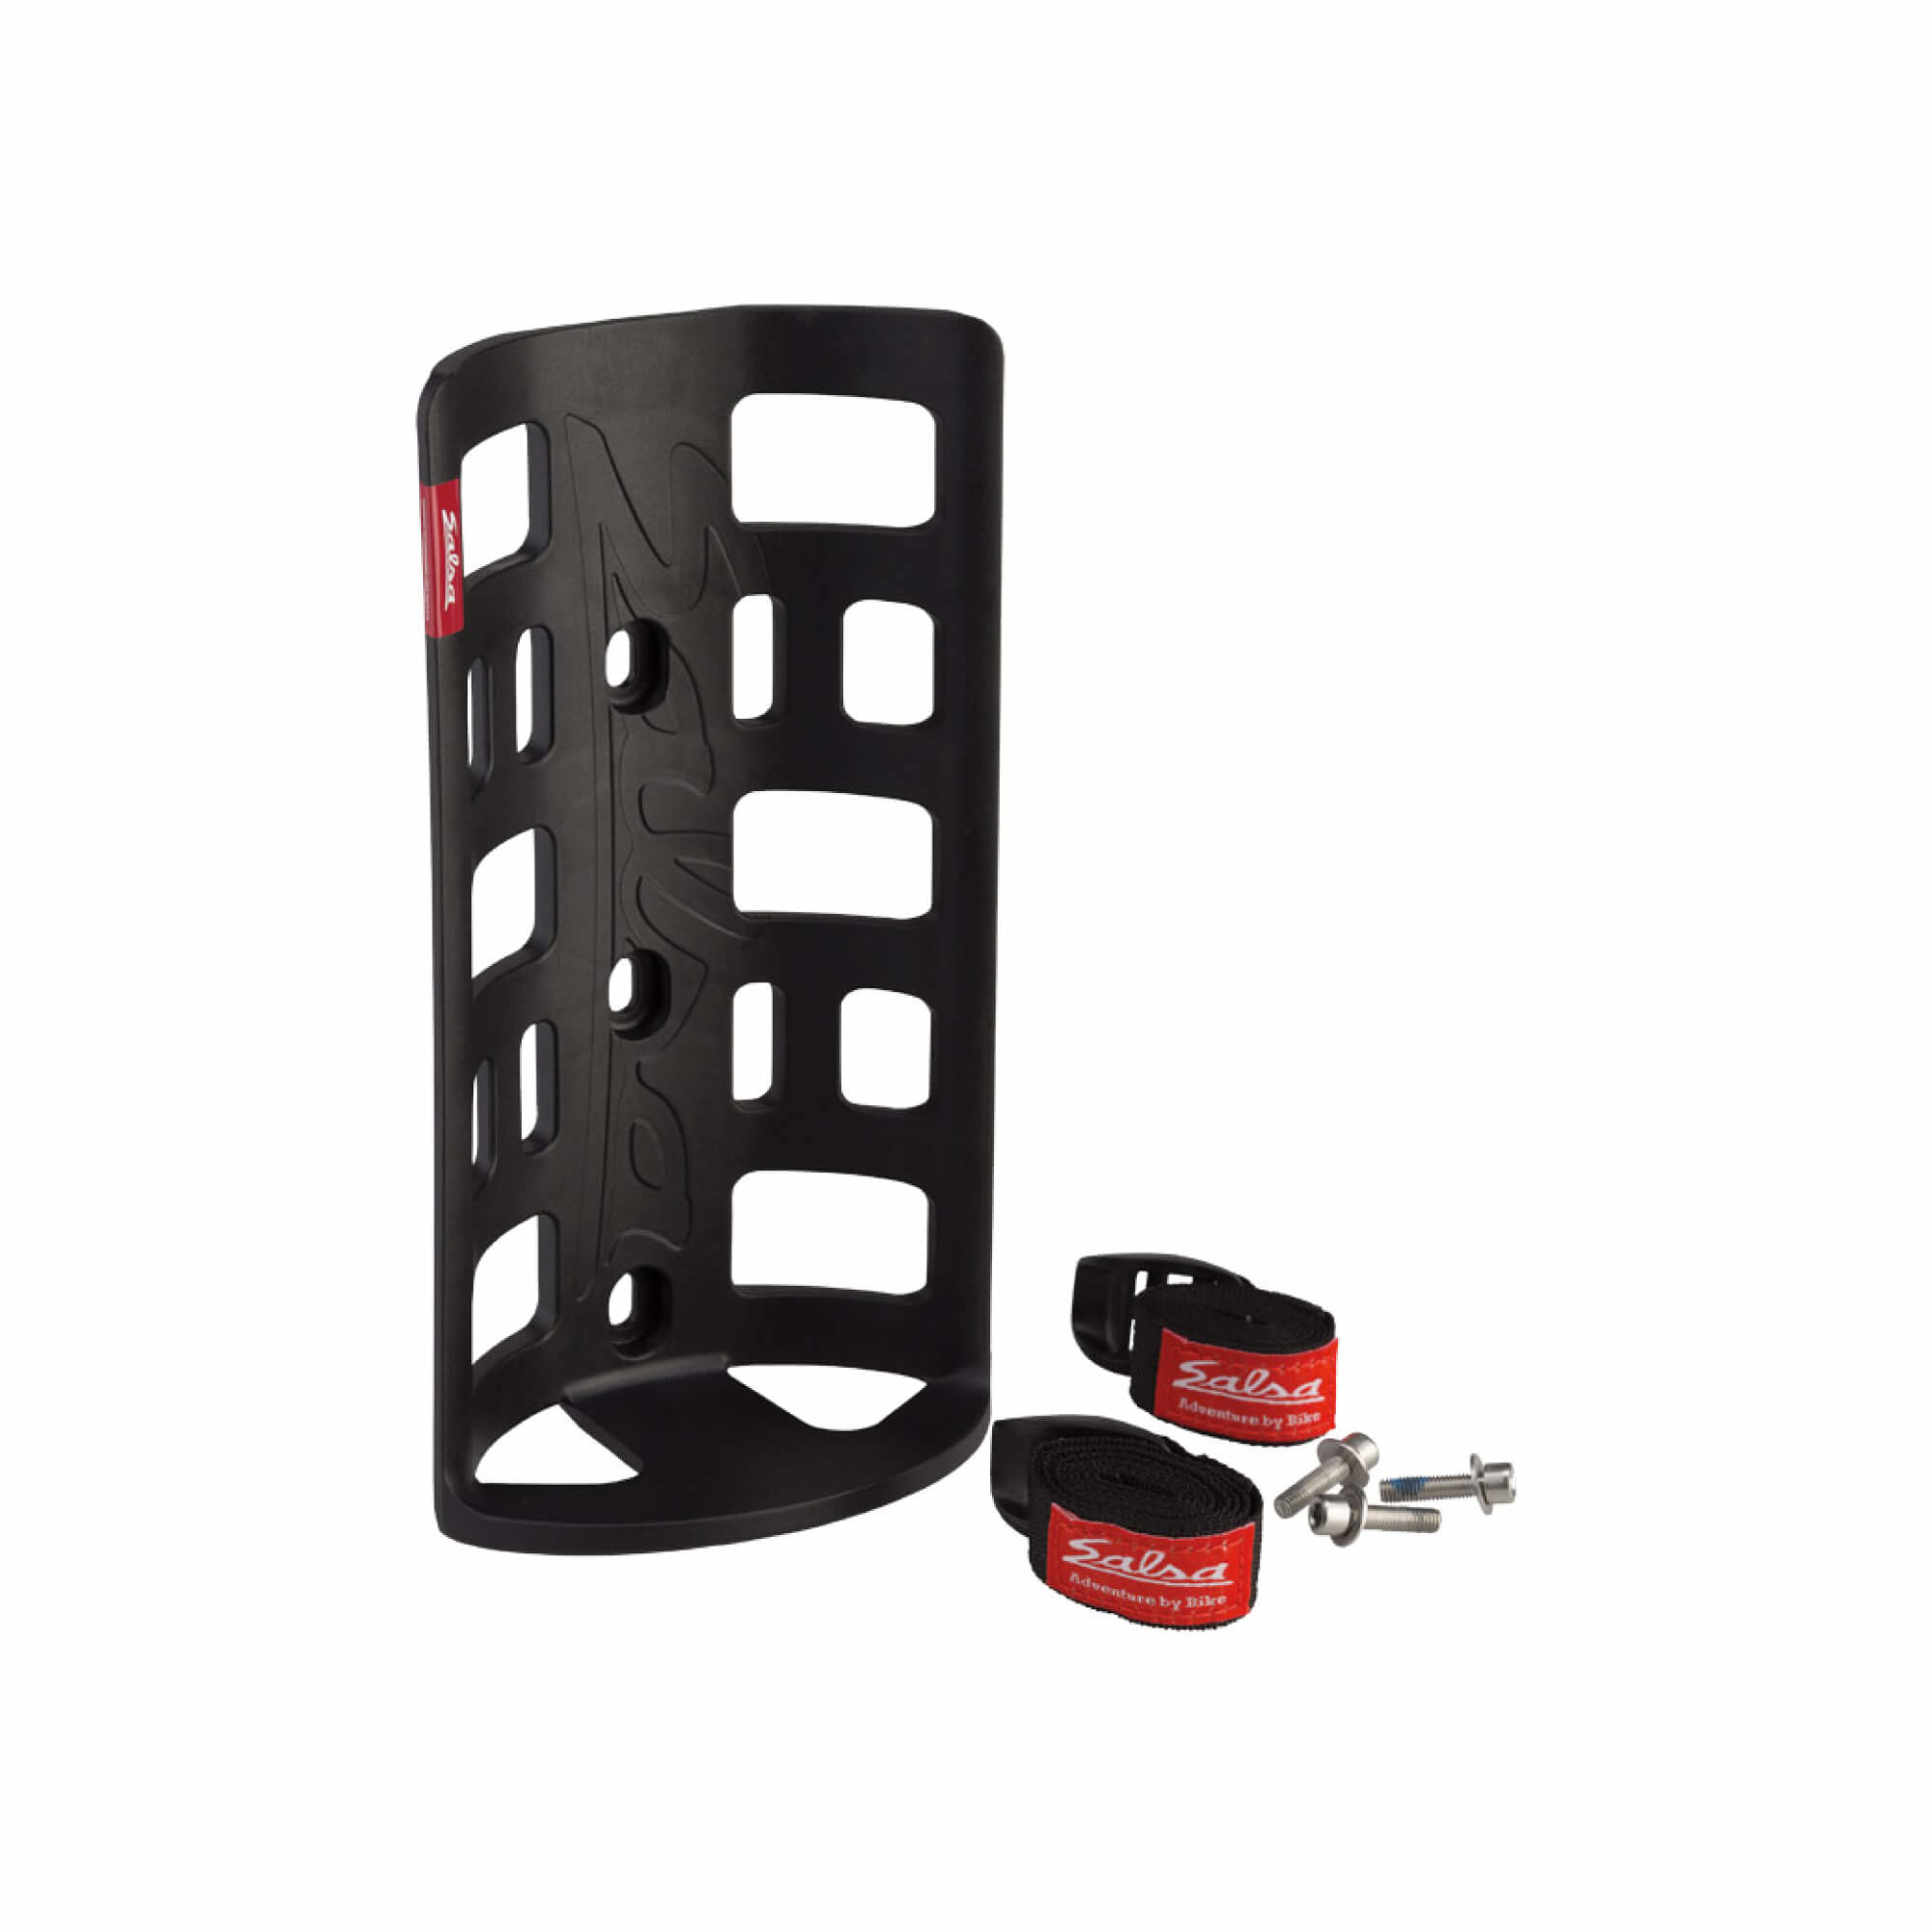 Anything Cage HD with Salsa Straps-1